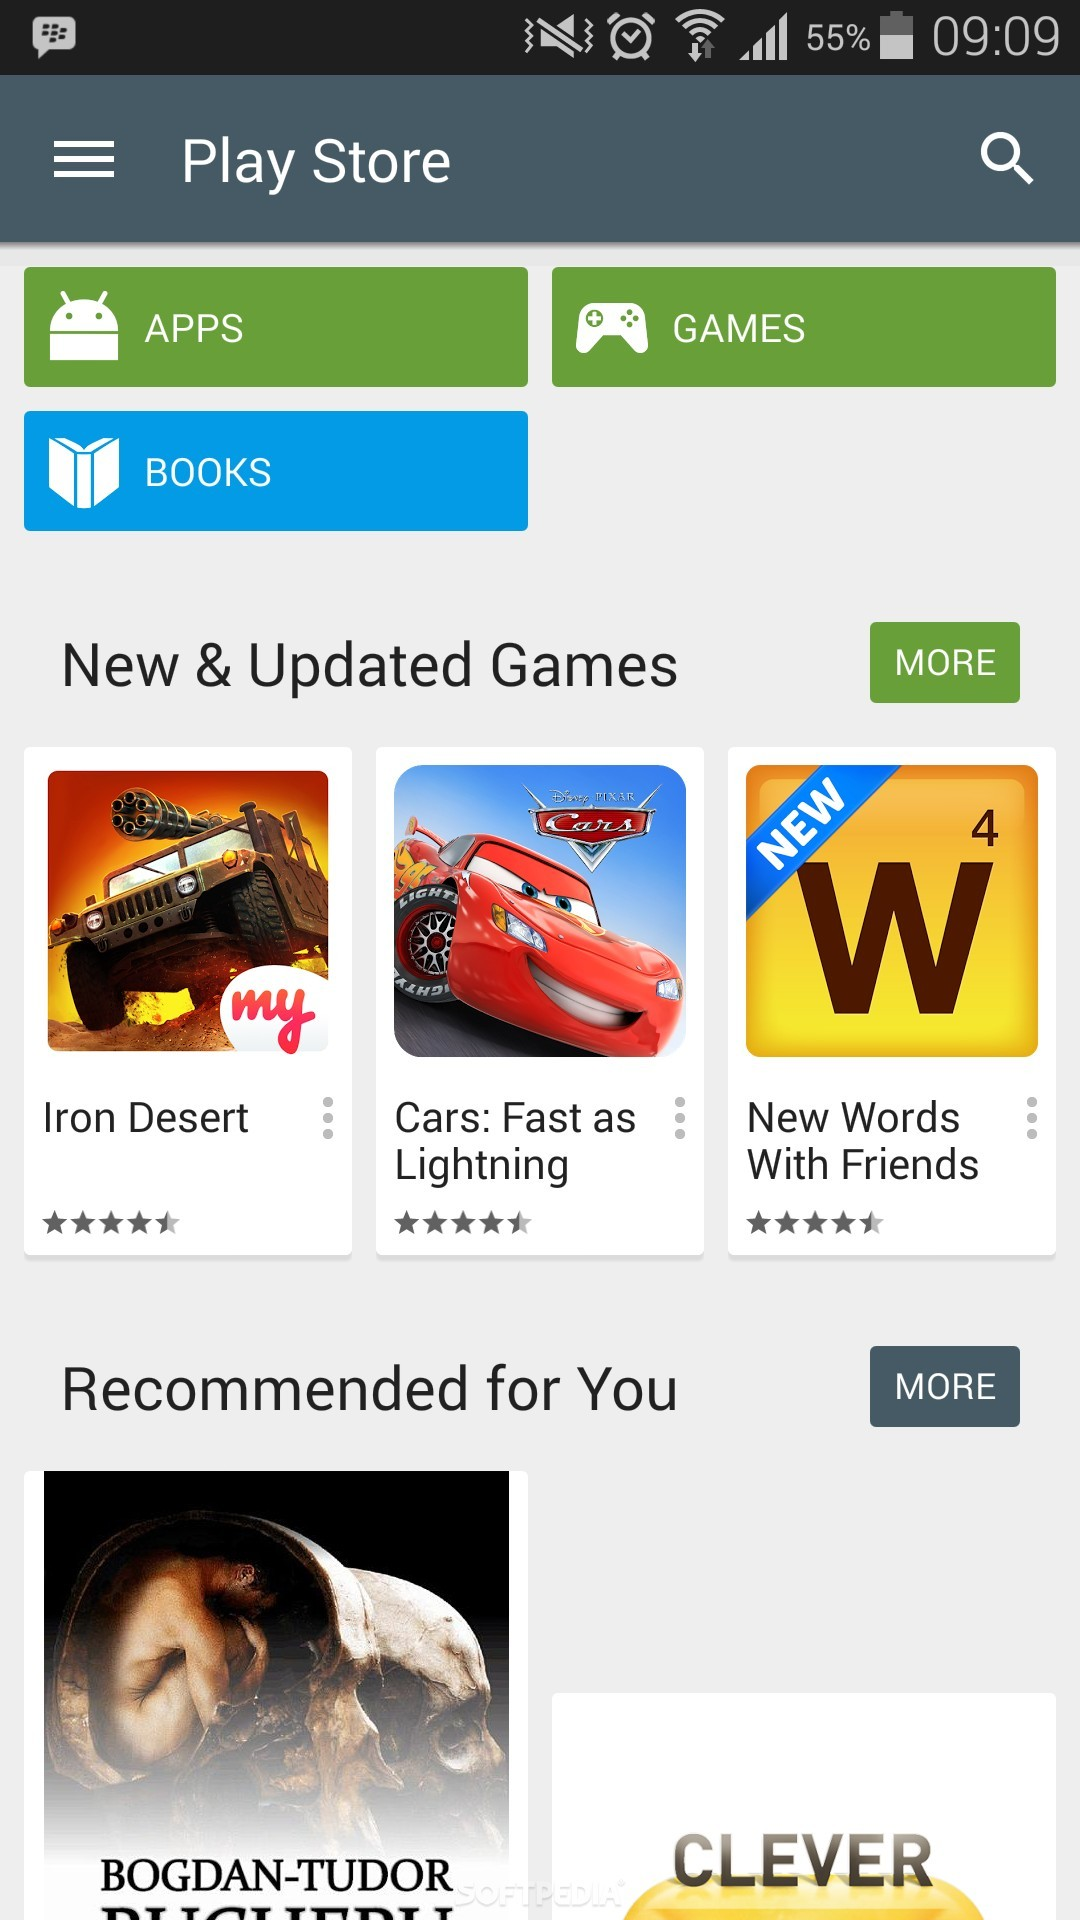 Google Play App Roundup Instagram Another World Tasks: Google Play Store 5.0 Released With Material Design And